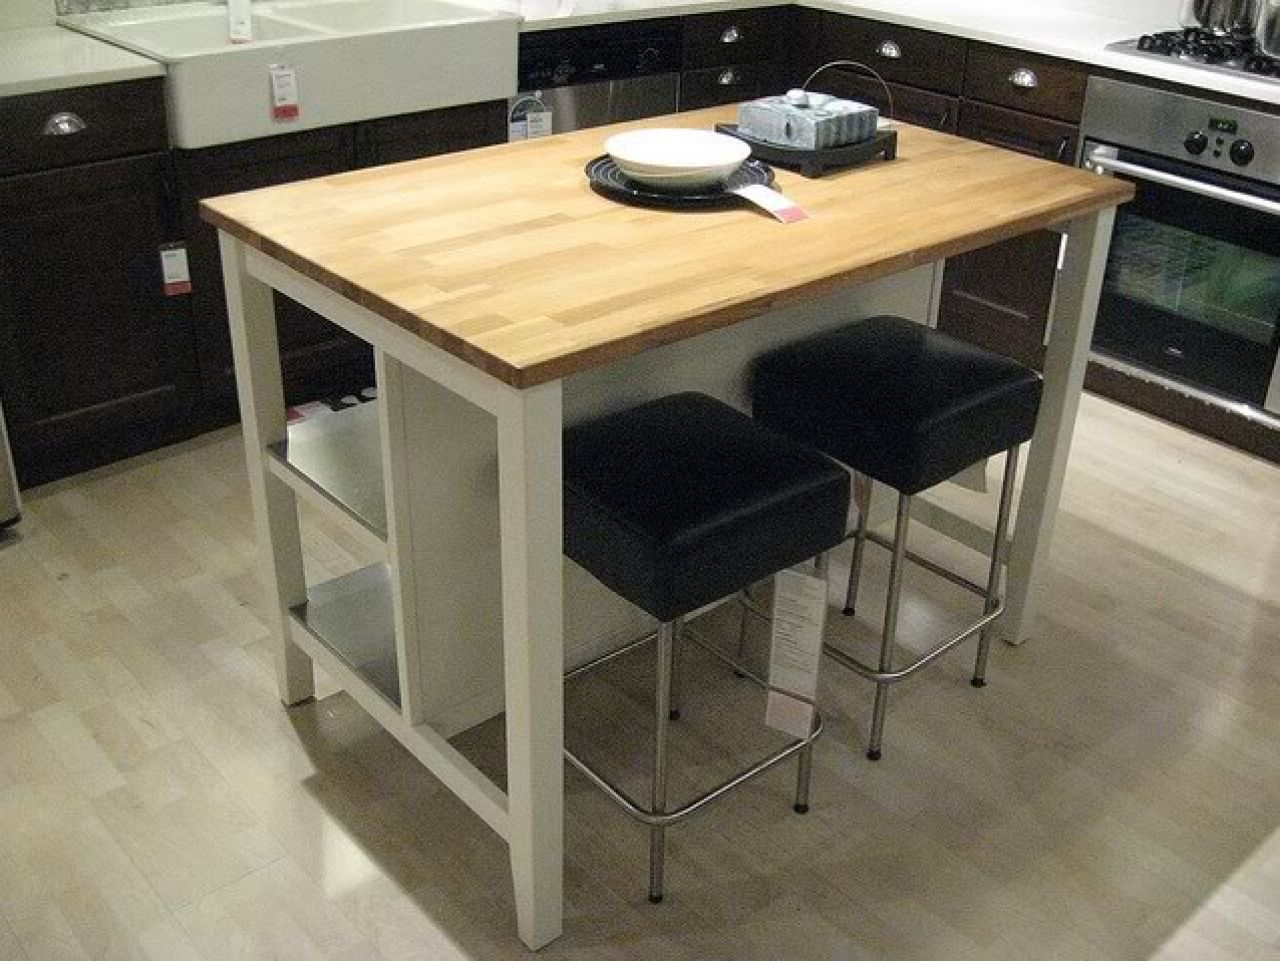 Island For Kitchen Ikea - Mdfyw.com | Home projects | Pinterest ...